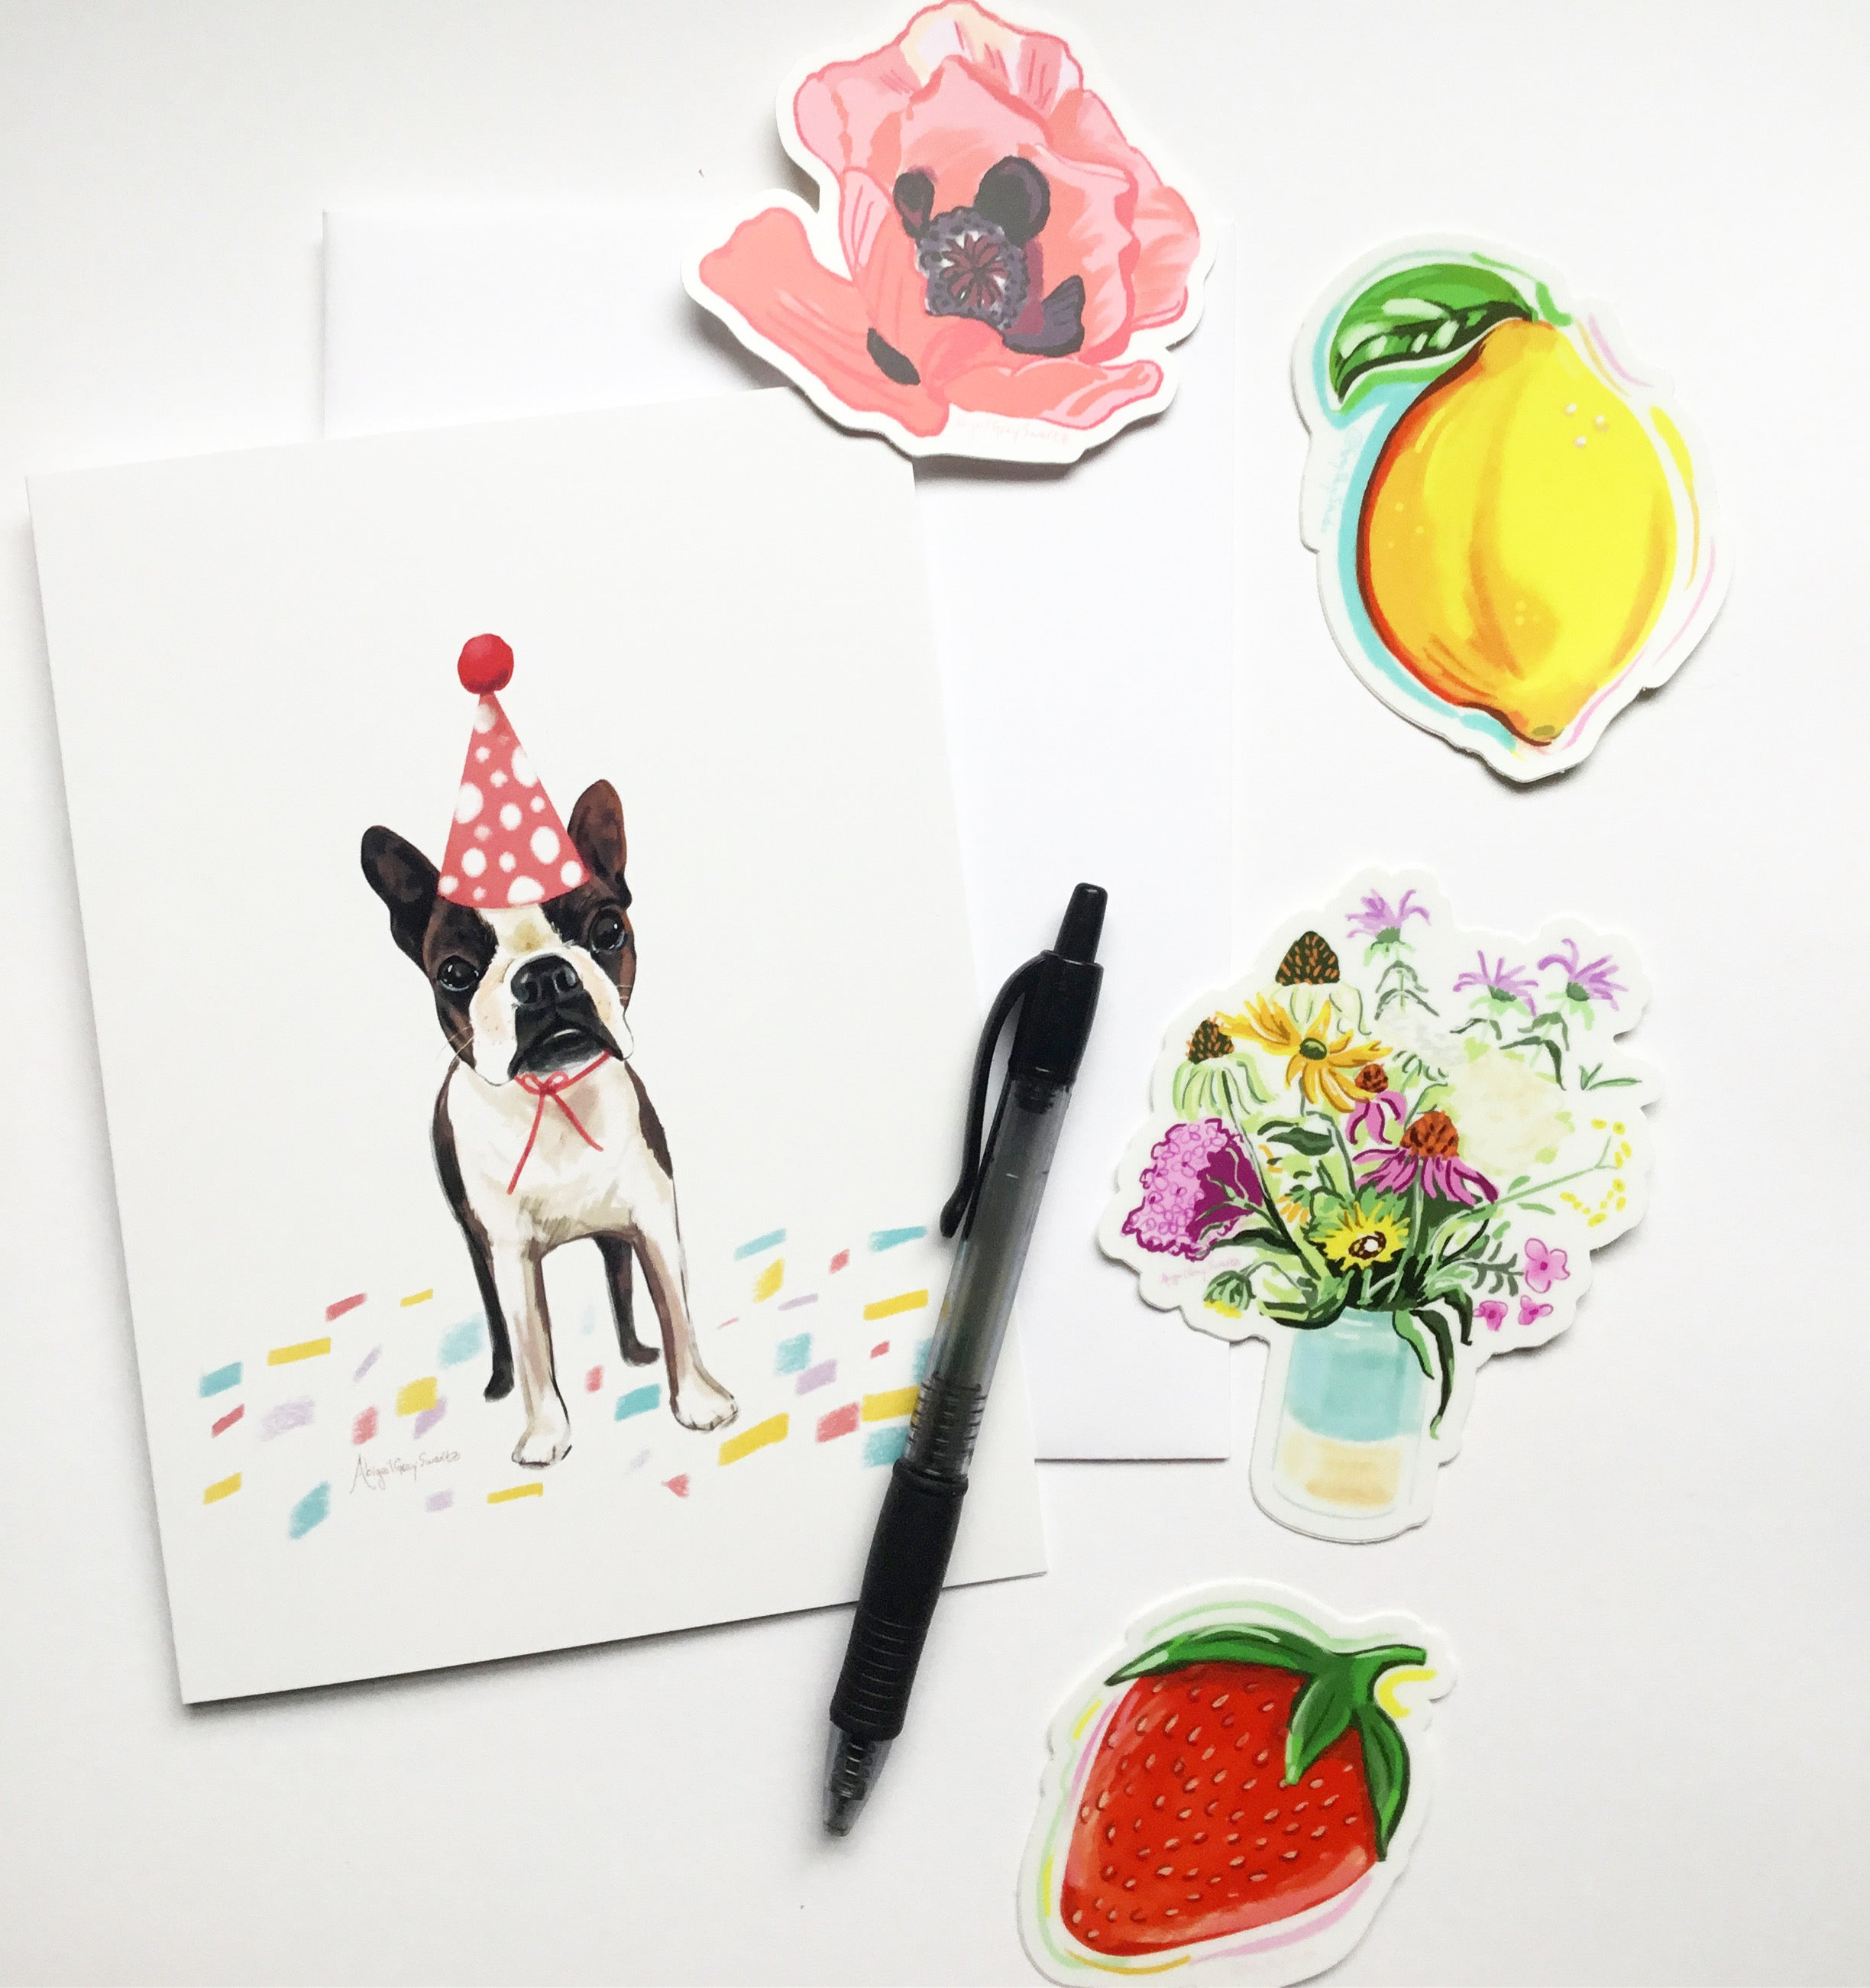 Care package: 1 greeting card and 4 stickers -Greeting Card